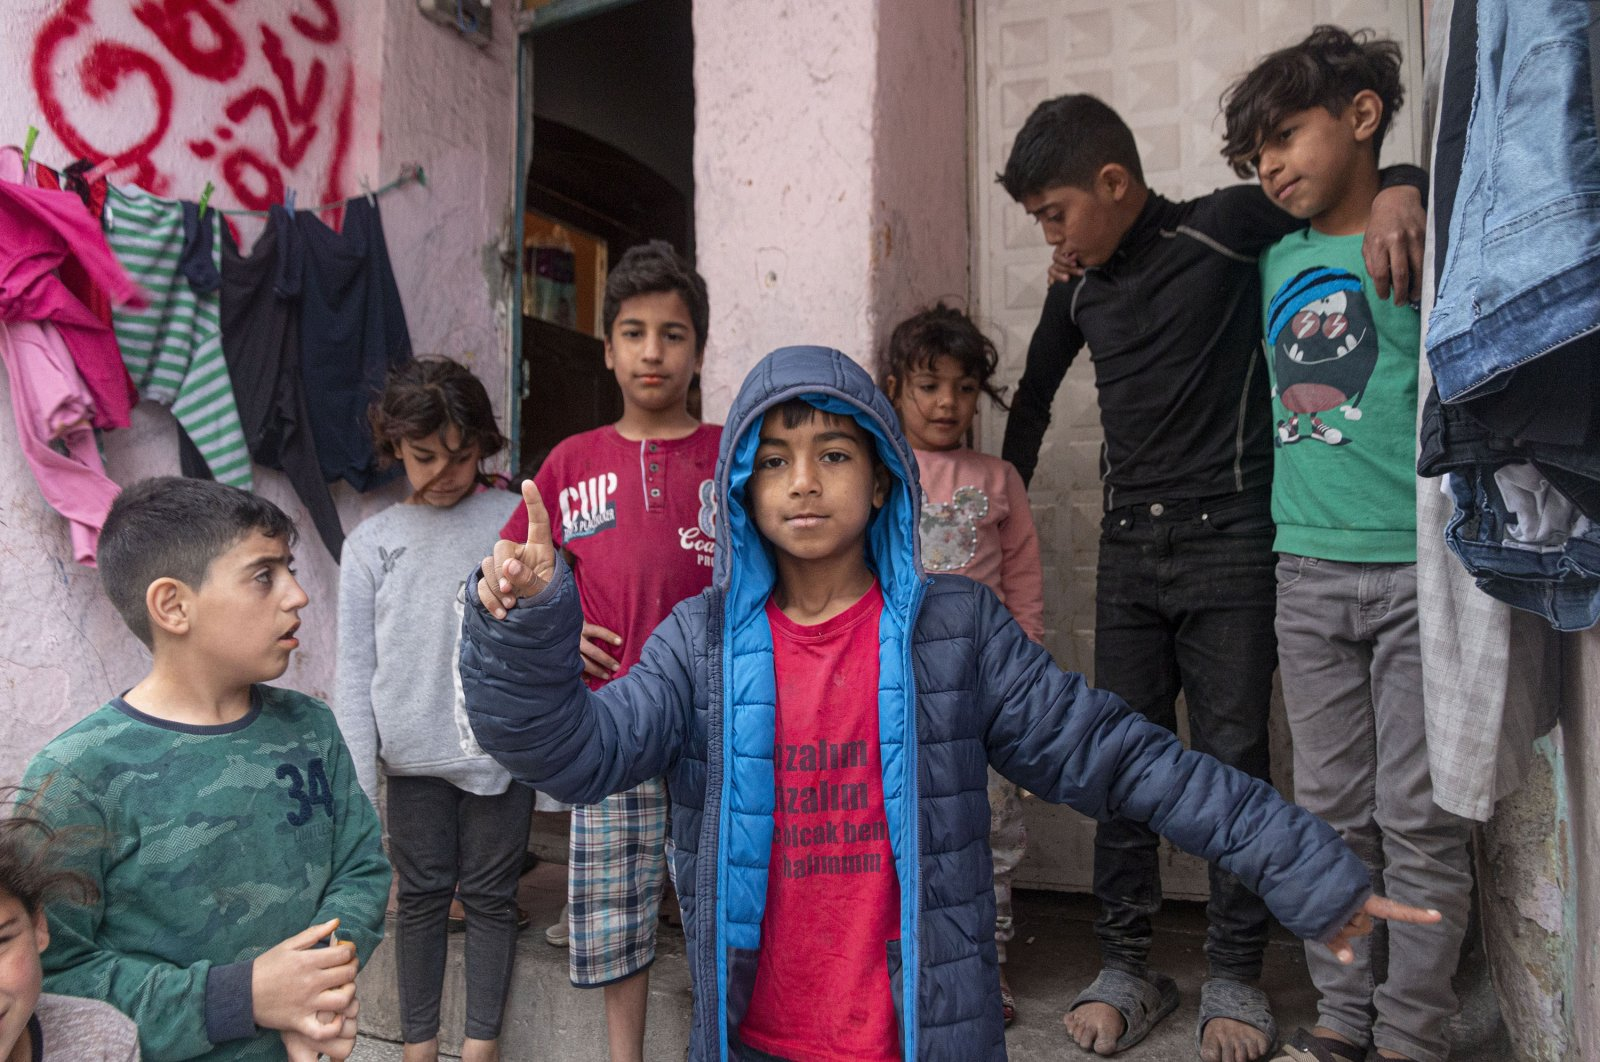 Syrian children pose for a photo at a migrant camp in the capital Ankara, Turkey, Apr. 30, 2020. (Getty Images)